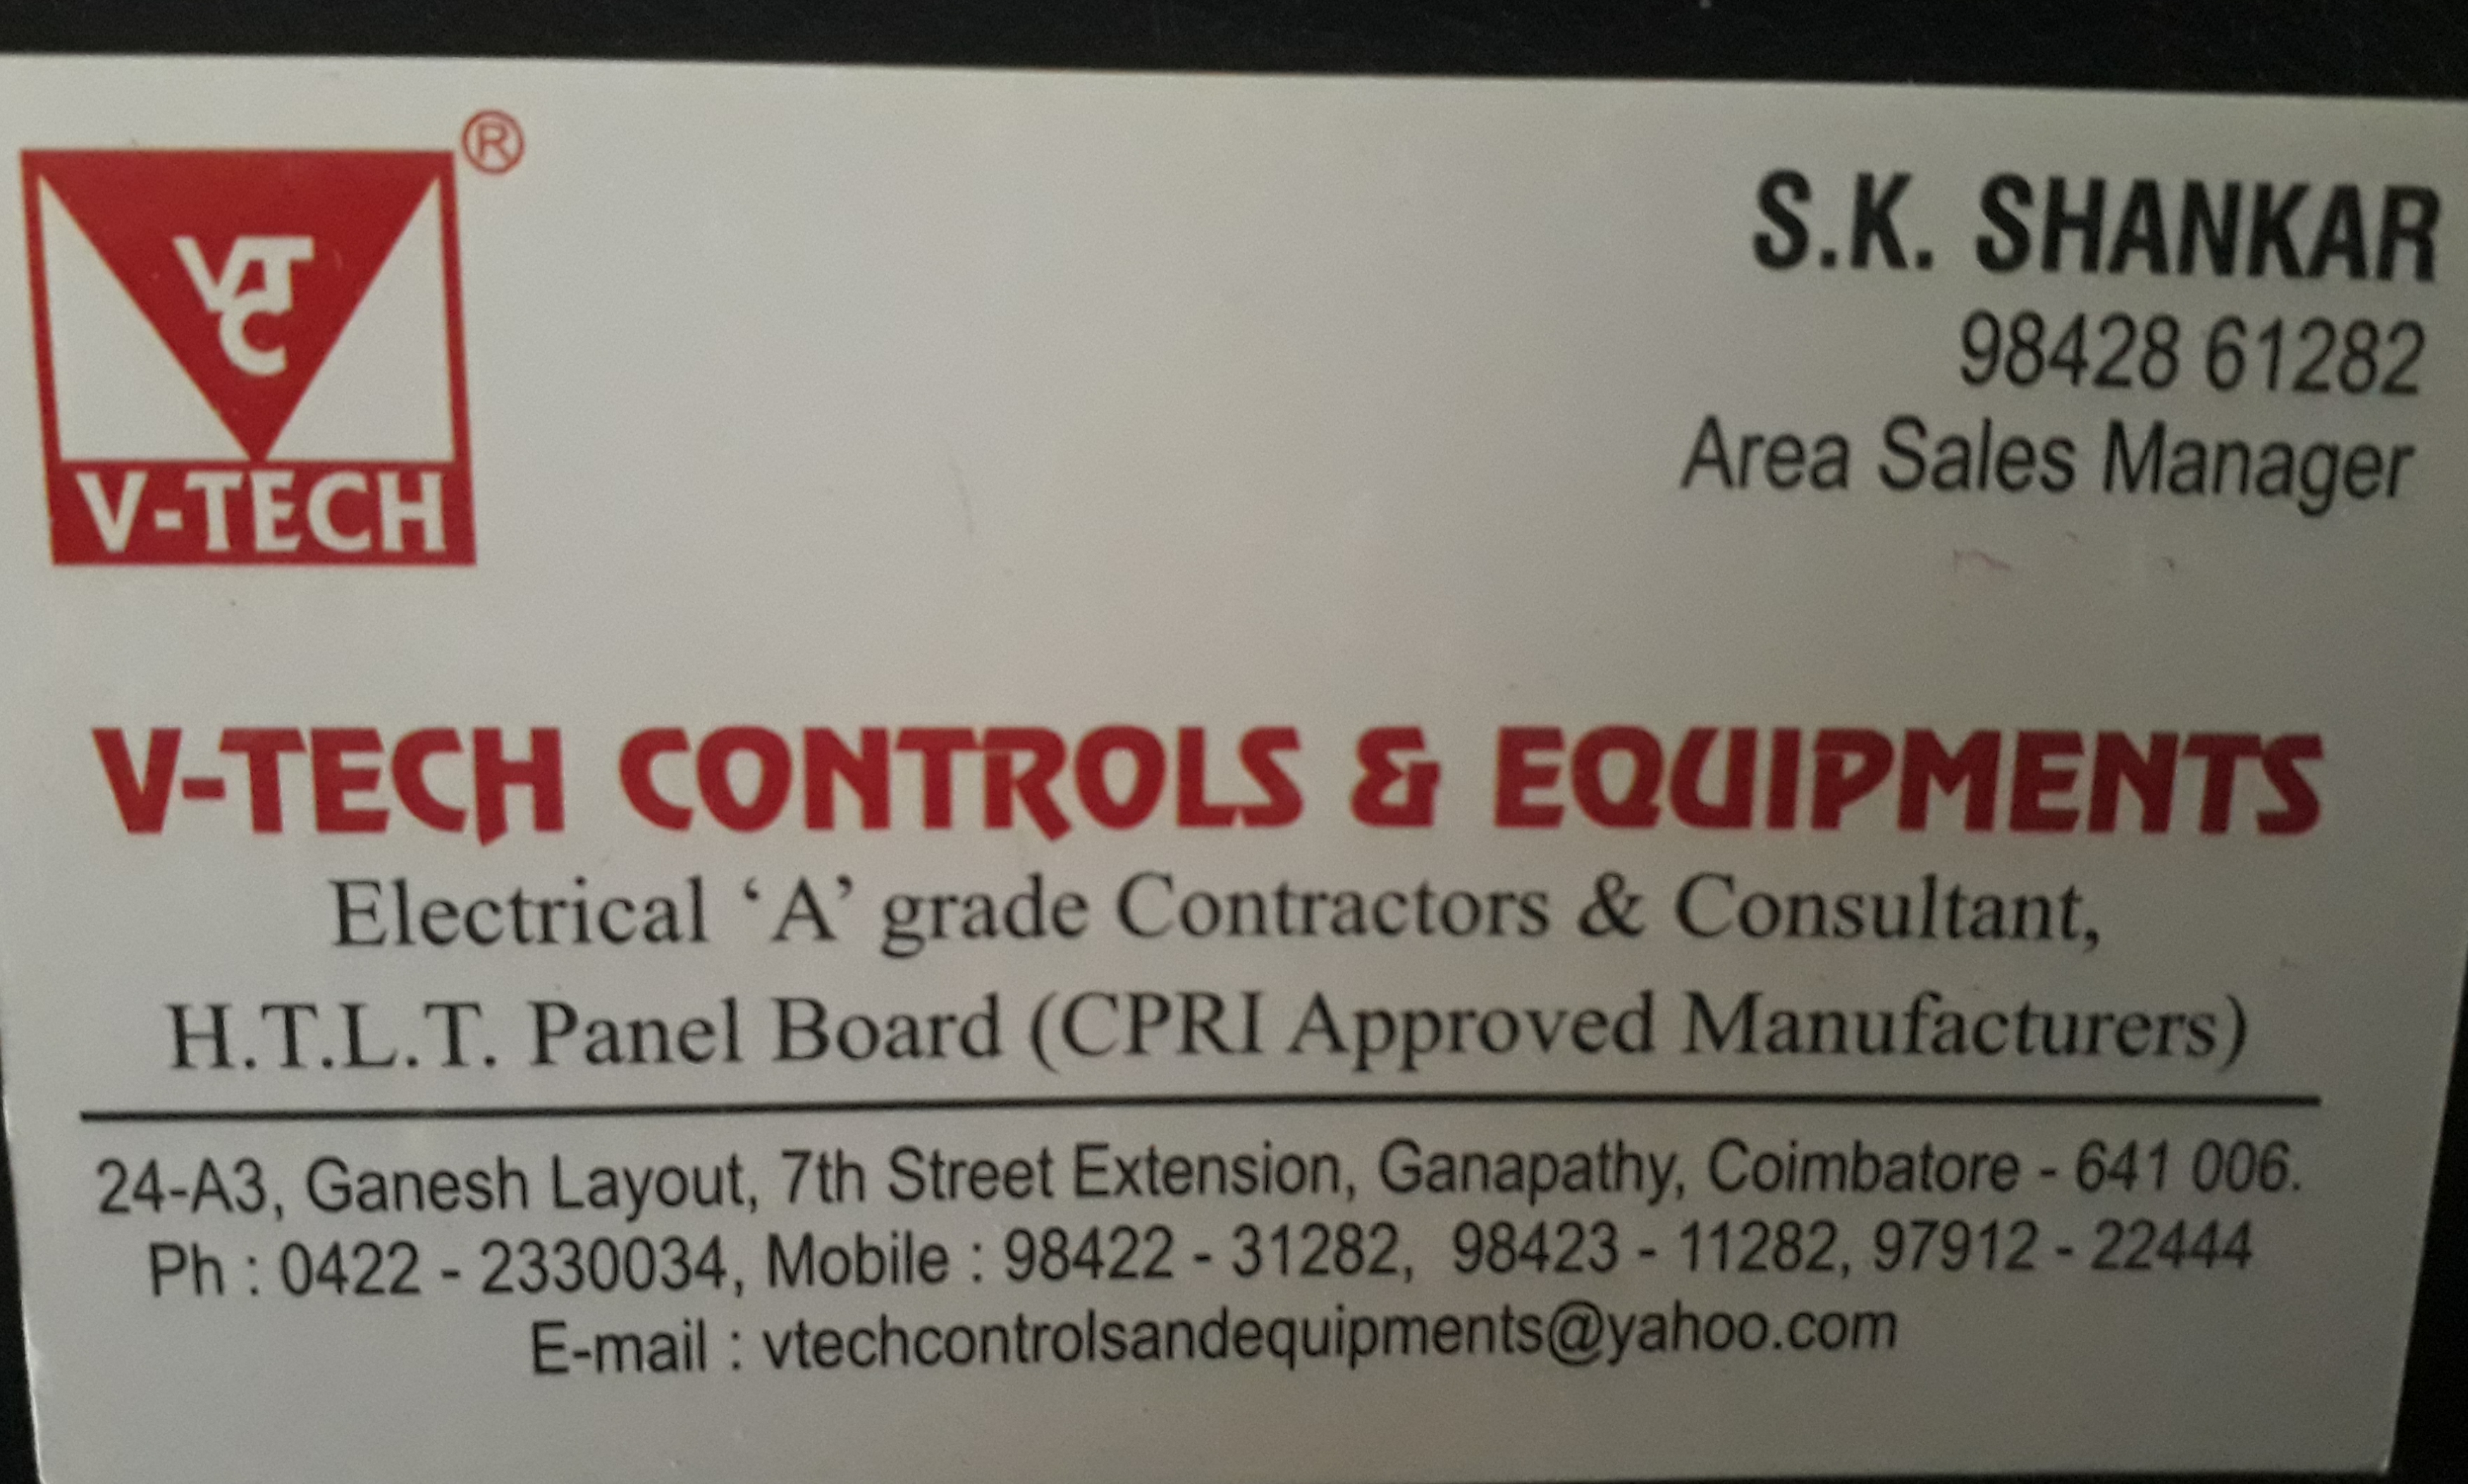 Vtech Controls & Equipments.